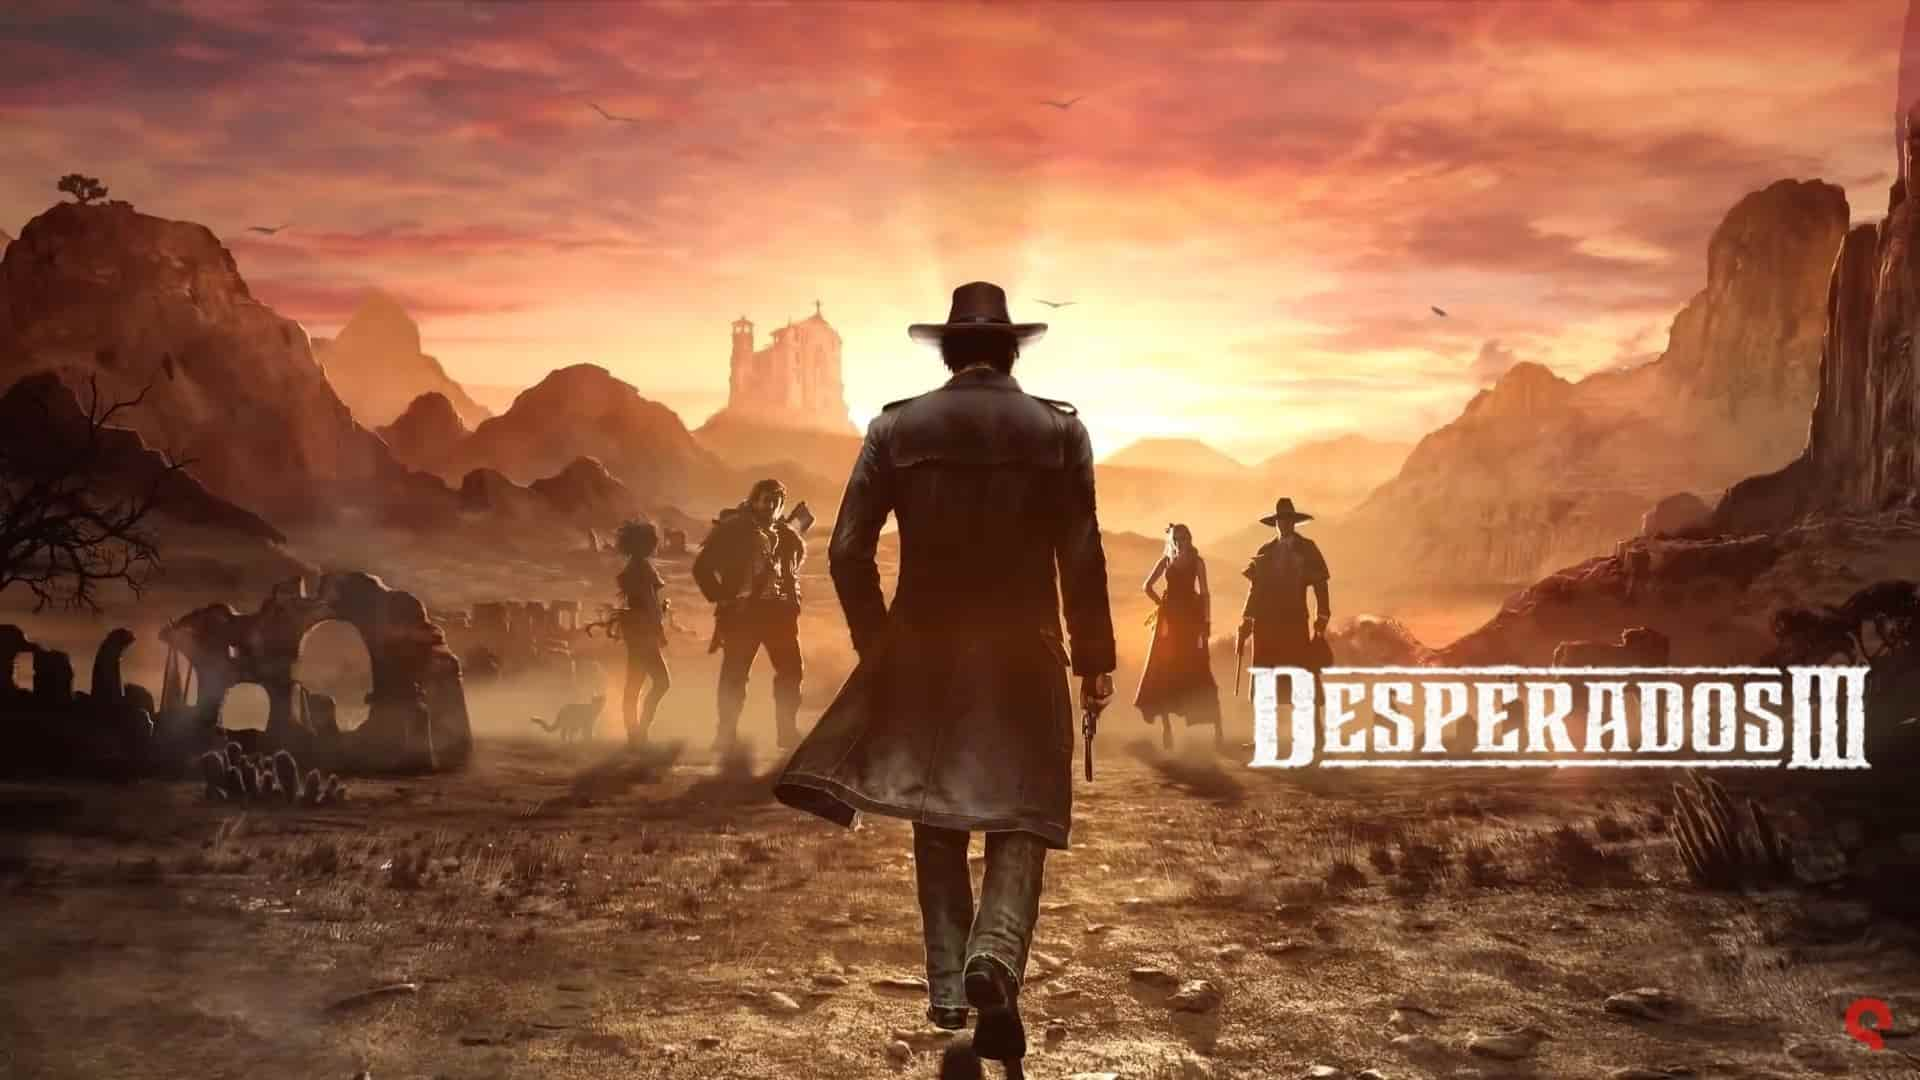 Desperados Iii We Discover The New Trailer With Hector Mendoza